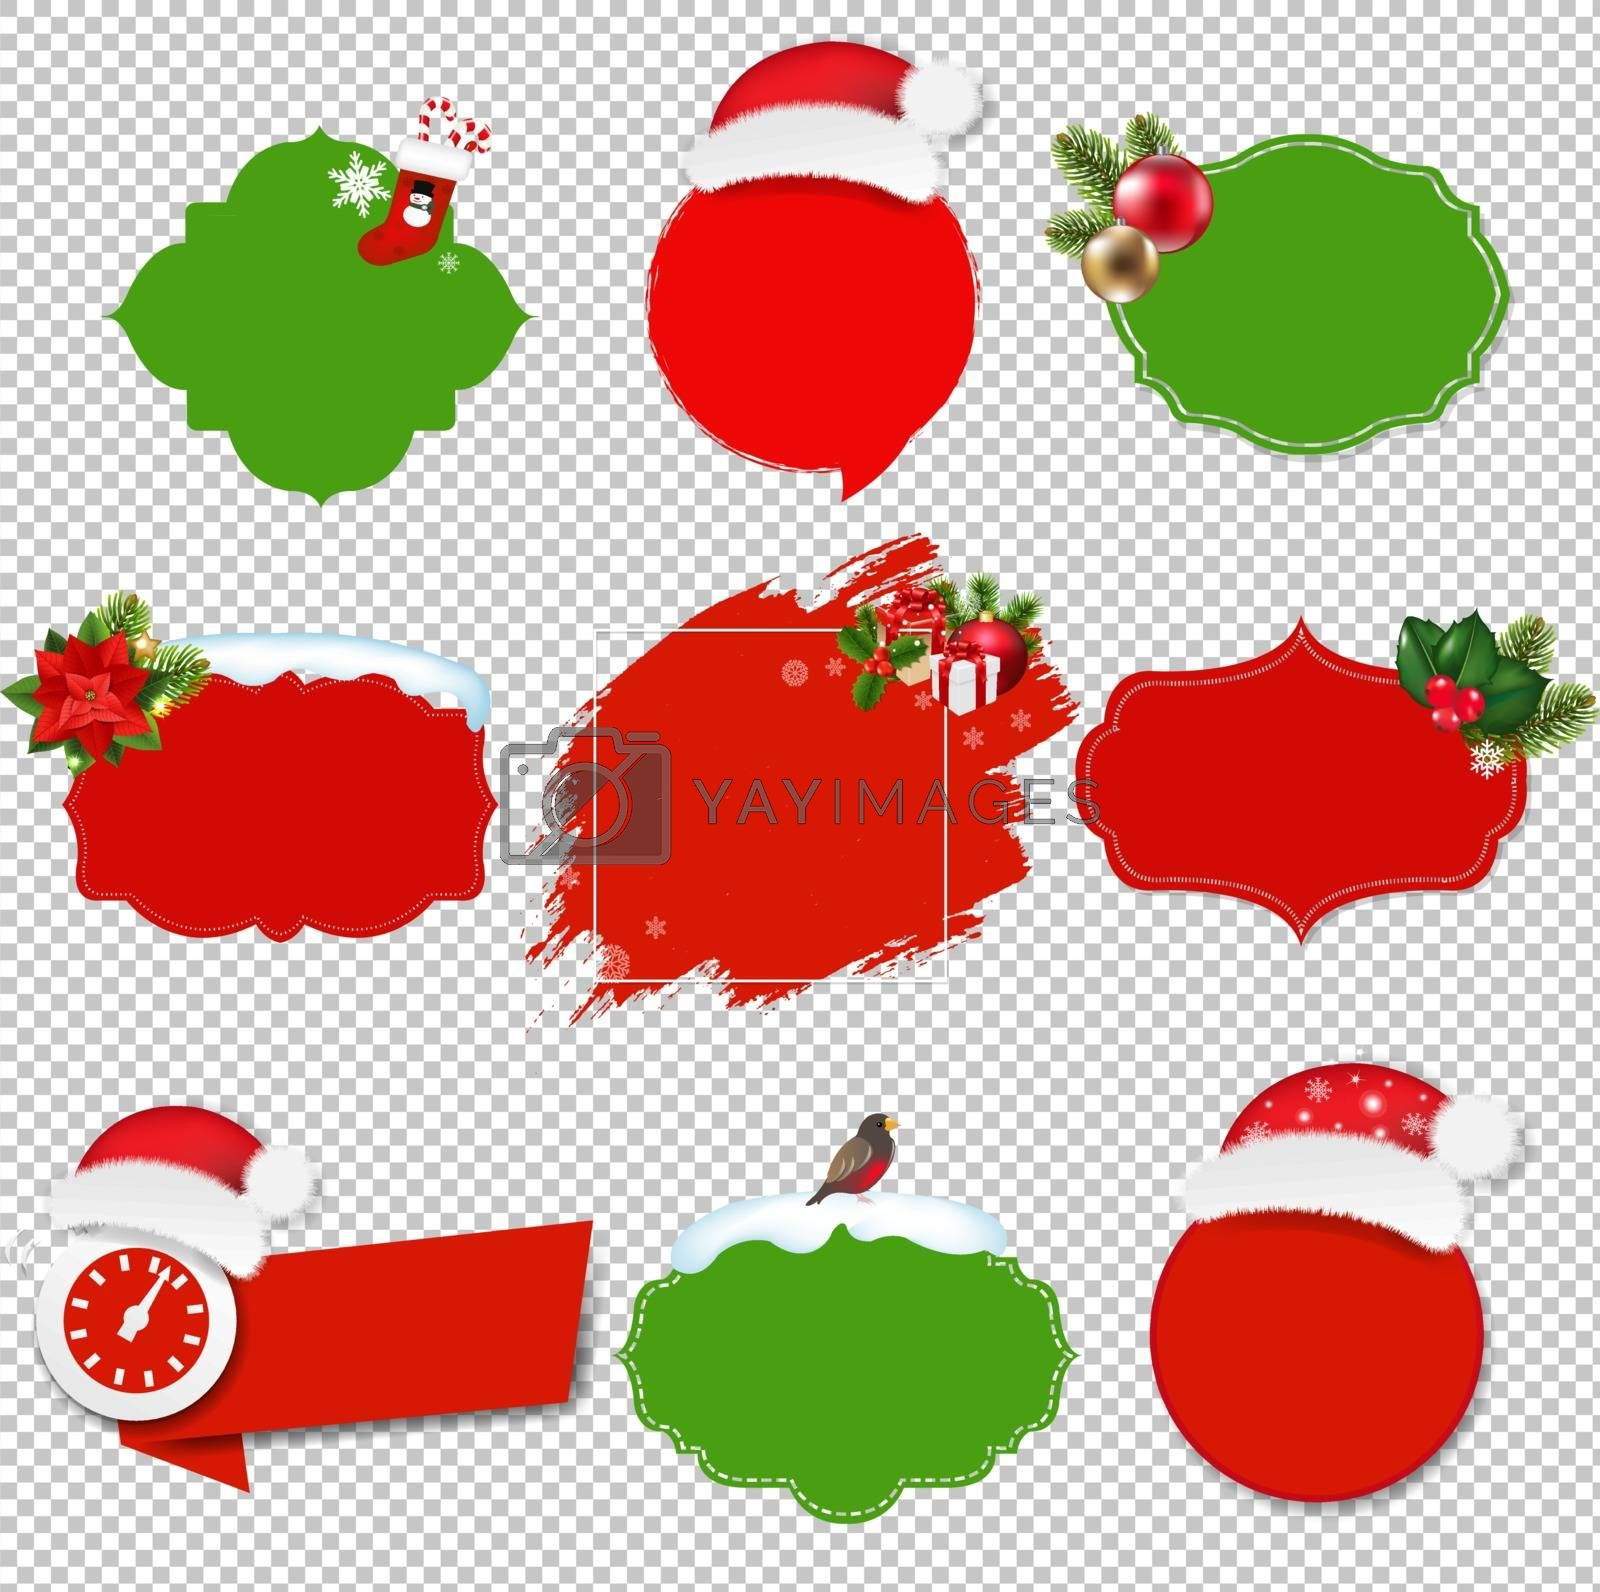 Christmas Sale Labels Set Isolated Transparent Background With Gradient Mesh, Vector Illustration